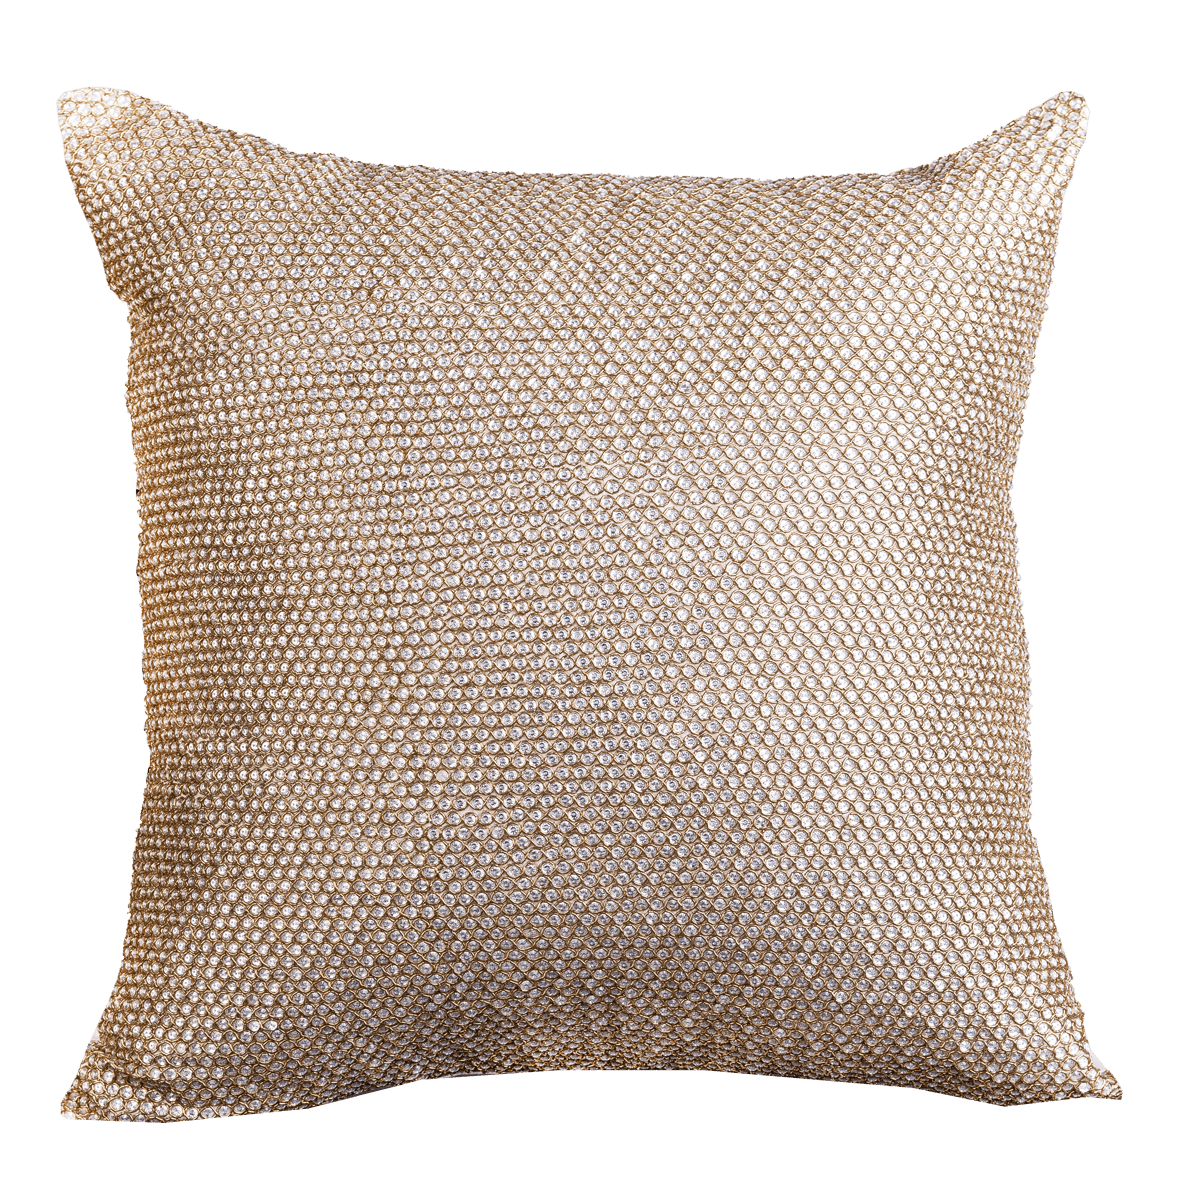 Couch pillow png. Metallic gold throw alepsi